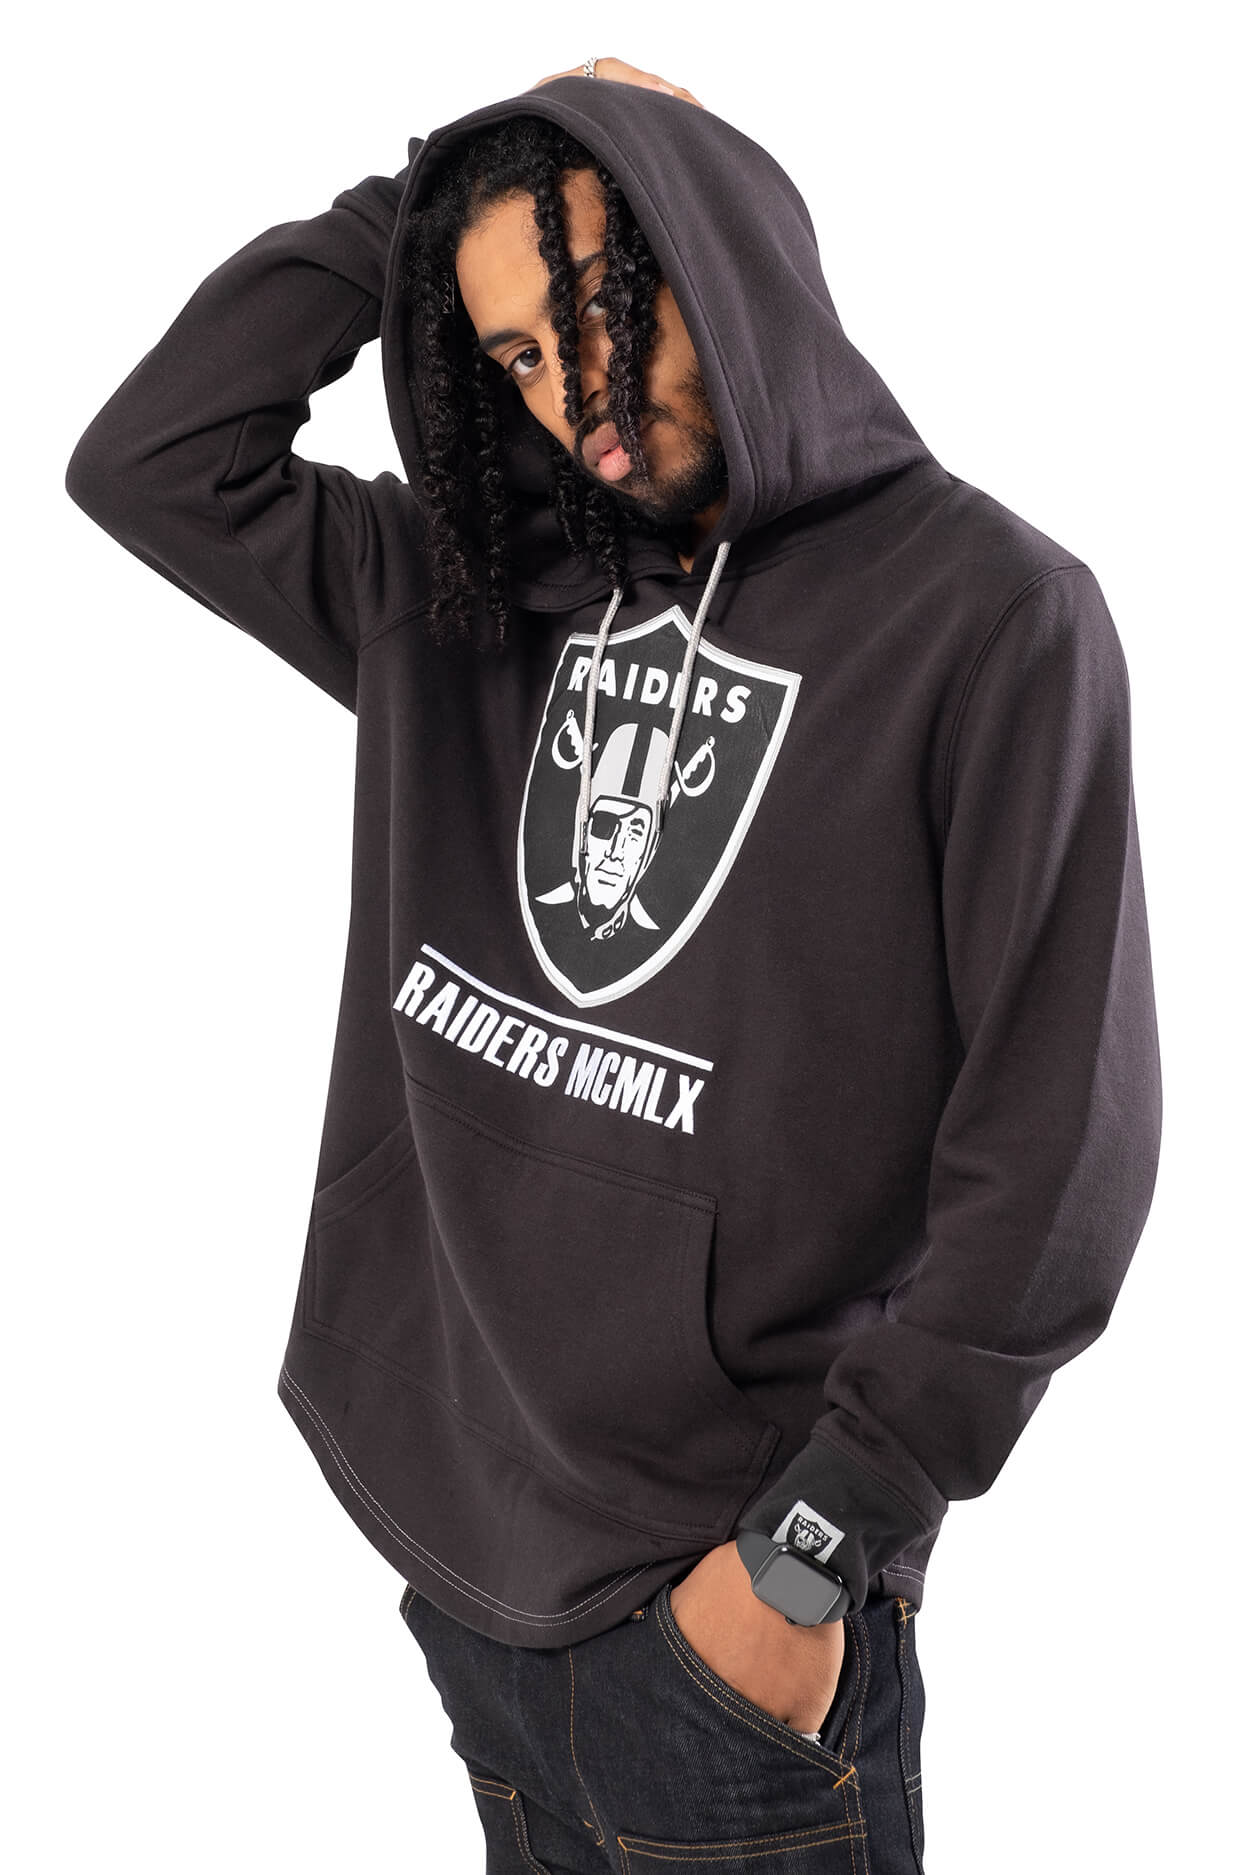 NFL Oakland Raiders Men's Embroidered Hoodie|Oakland Raiders